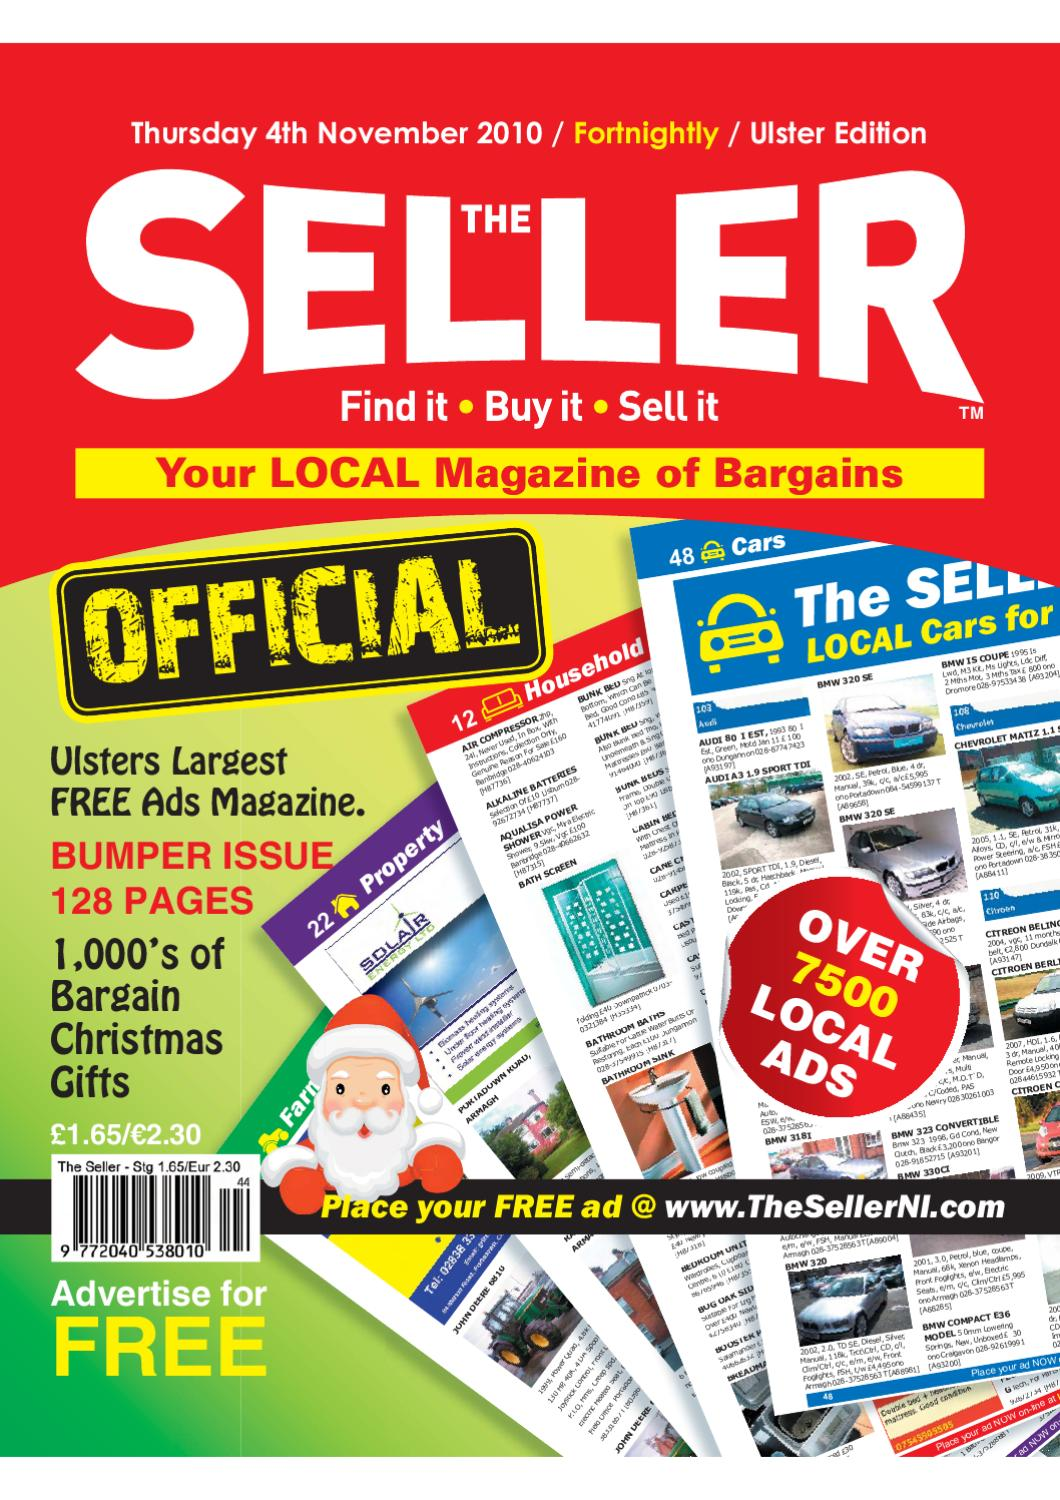 573e2778acf THe Seller NI Issue 9 by IDS Media Group Ltd - issuu